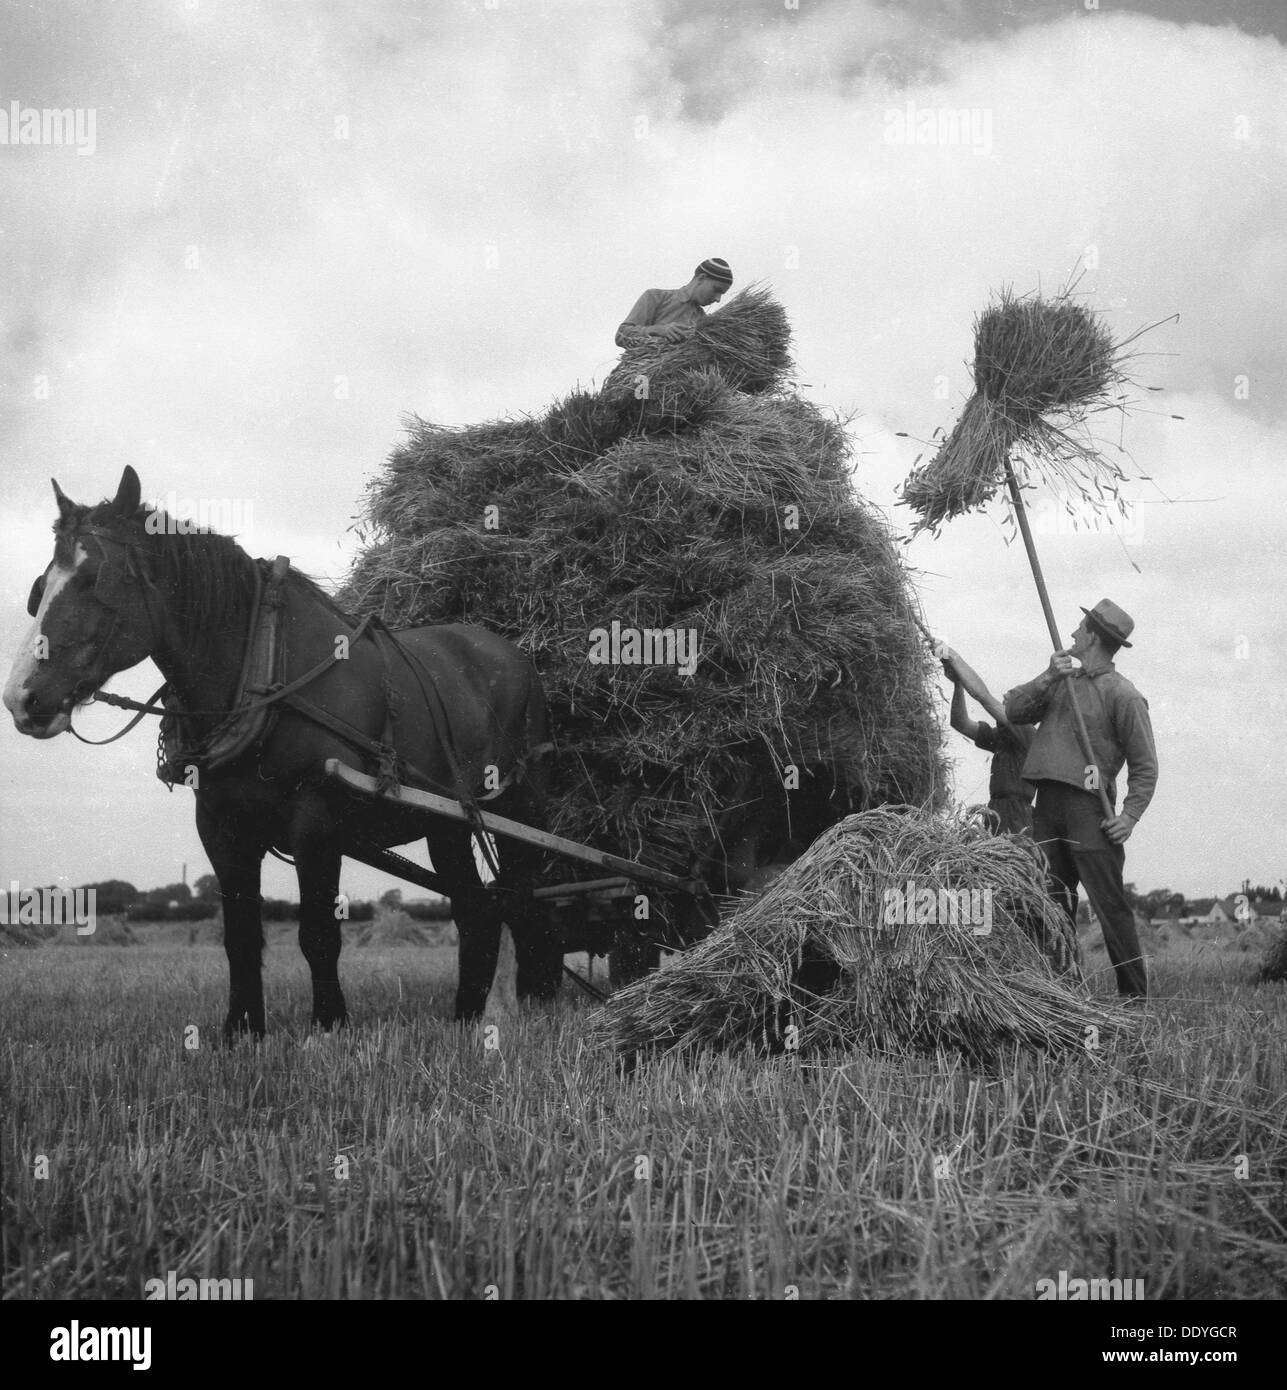 Haymaking, Scania, Sweden, 1940s. - Stock Image